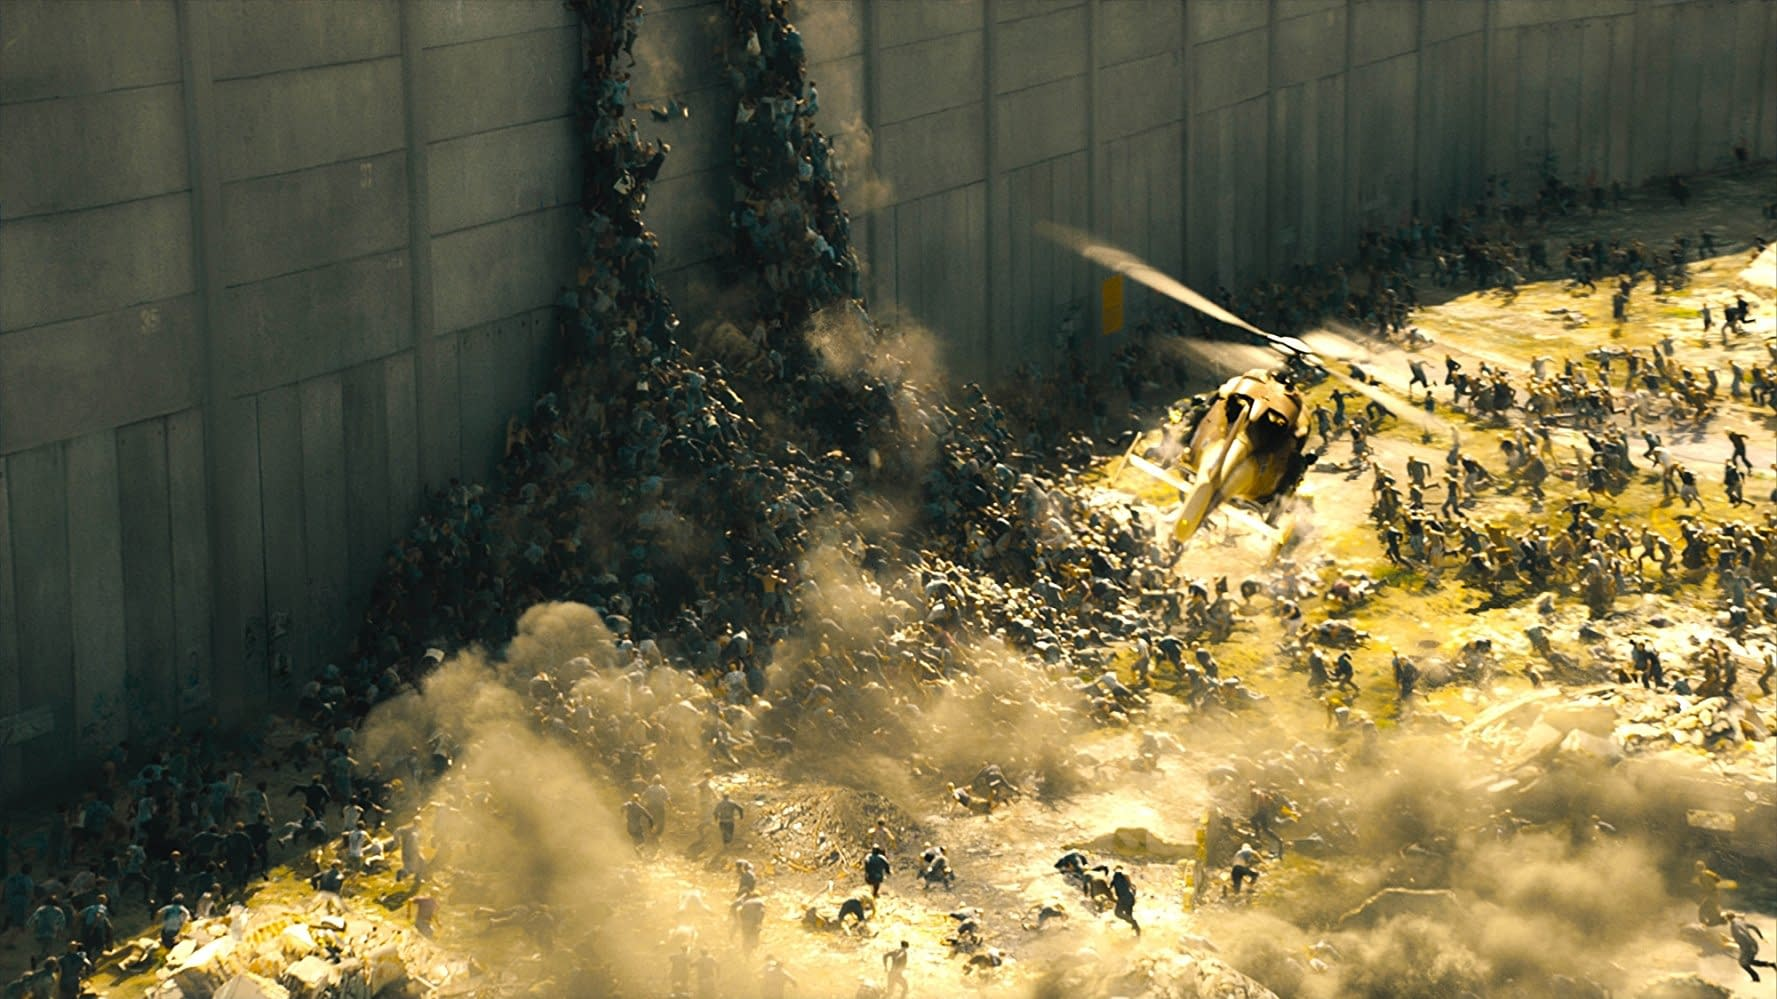 [RUMOR] World War Z 2 Production Has Been Pushed Back